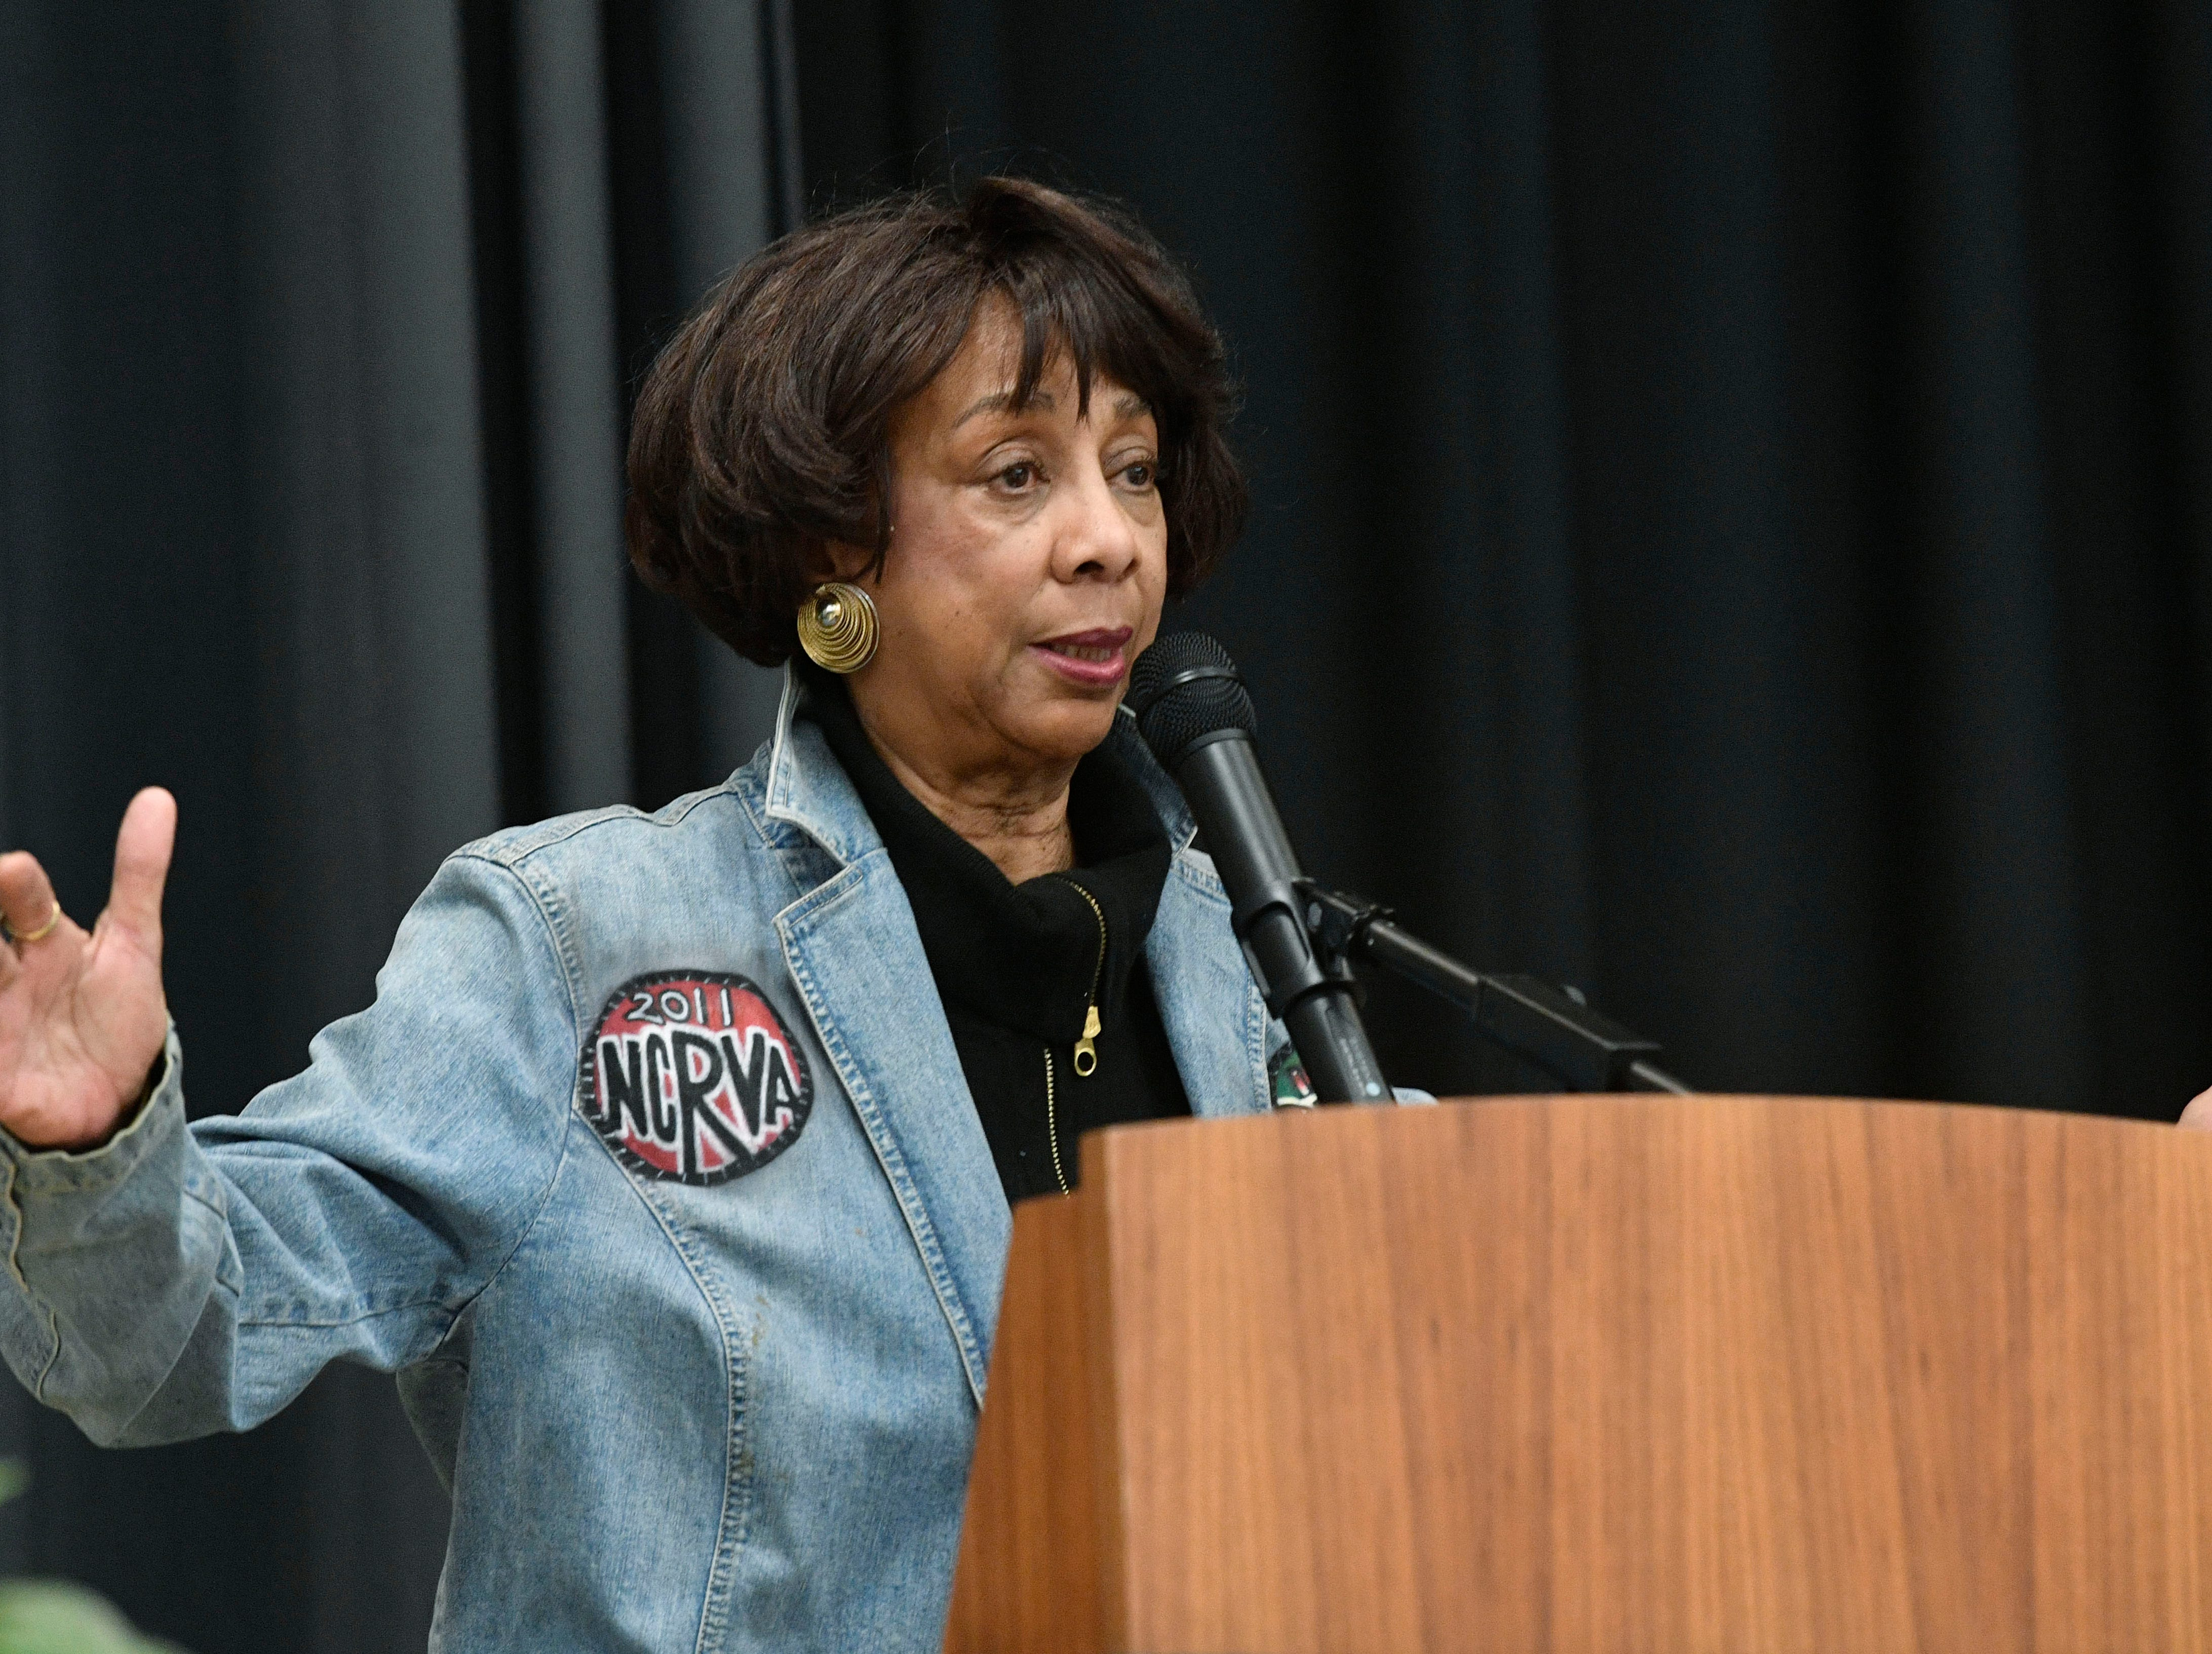 Gloria McKissack talks about her experiences during the civil rights movement in Nashville as a college student.A significant part of We Shall Overcome exhibition will be presented at the Robert Churchwell Museum Magnet School beginning November 30. To celebrate its opening, the school hosted an assembly that featured remarks by the principal and a conversation with several participants, including Lajuanda Street Harley, Kwame Lillard, Rip Patton, and Gloria McKissack. Friday Nov. 30, 2018, in Nashville, Tenn.